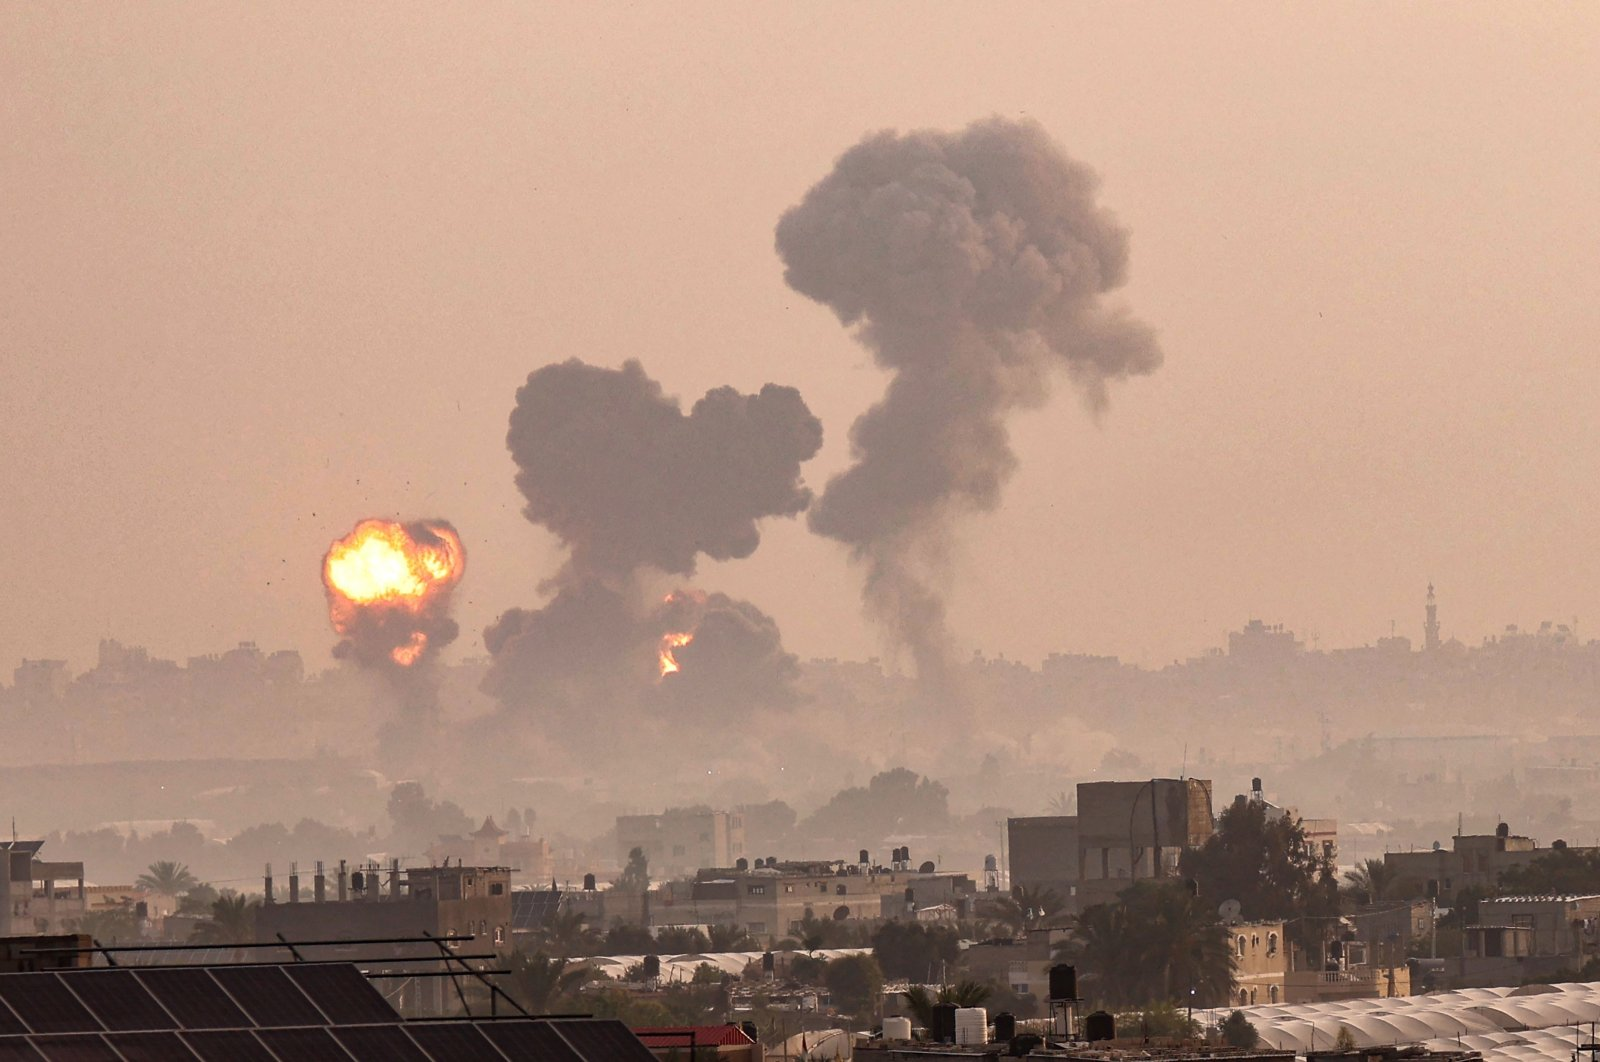 Fire and smoke billow from Israeli airstrikes in Khan Yunis, in the southern Gaza Strip, Palestine, May 11, 2021. (AFP Photo)